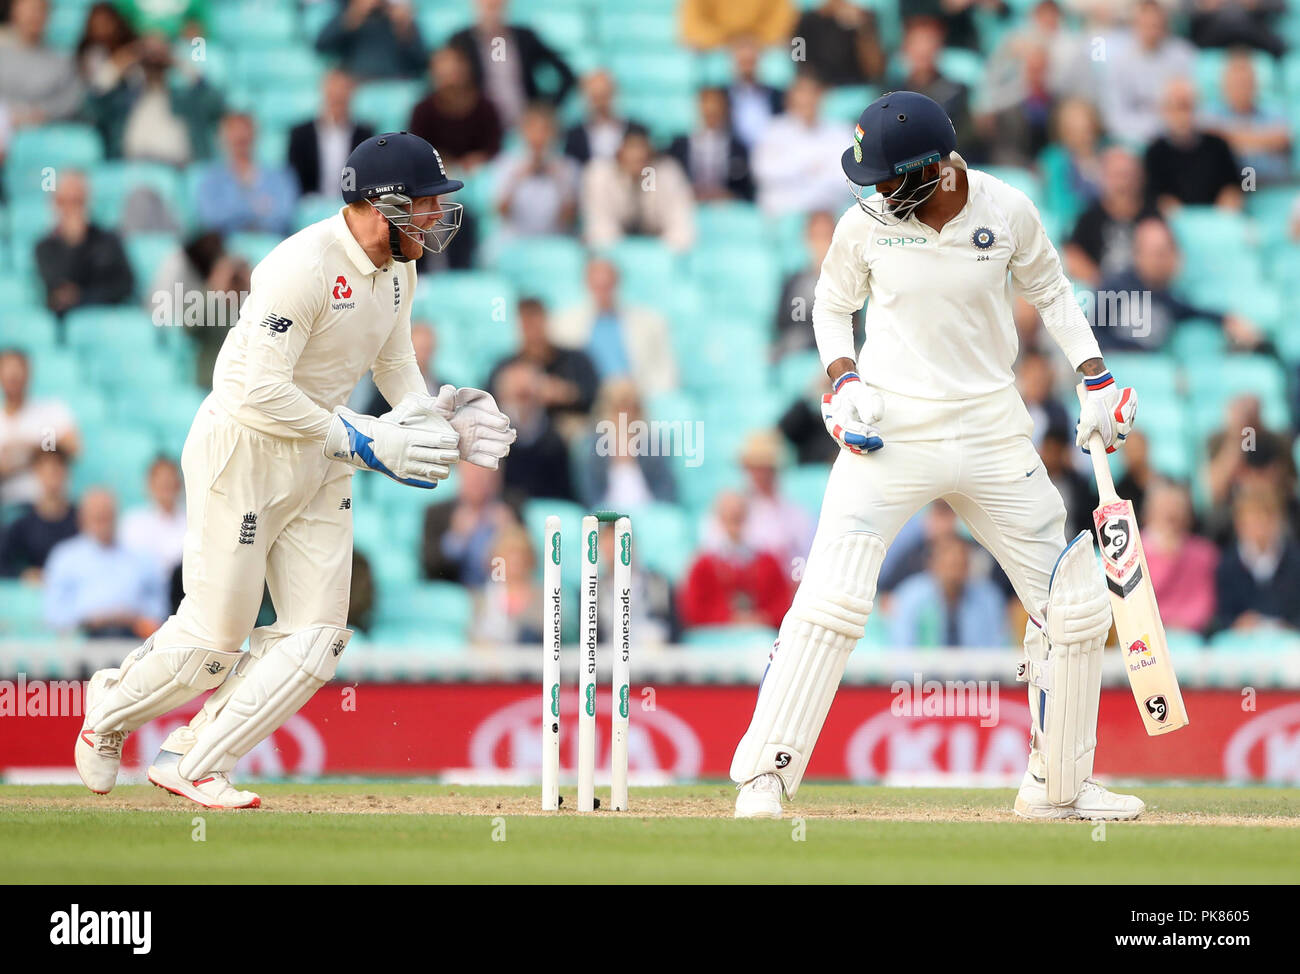 India's KL Rahul is bowled by England's Adil Rashid during the test match at The Kia Oval, London. - Stock Image